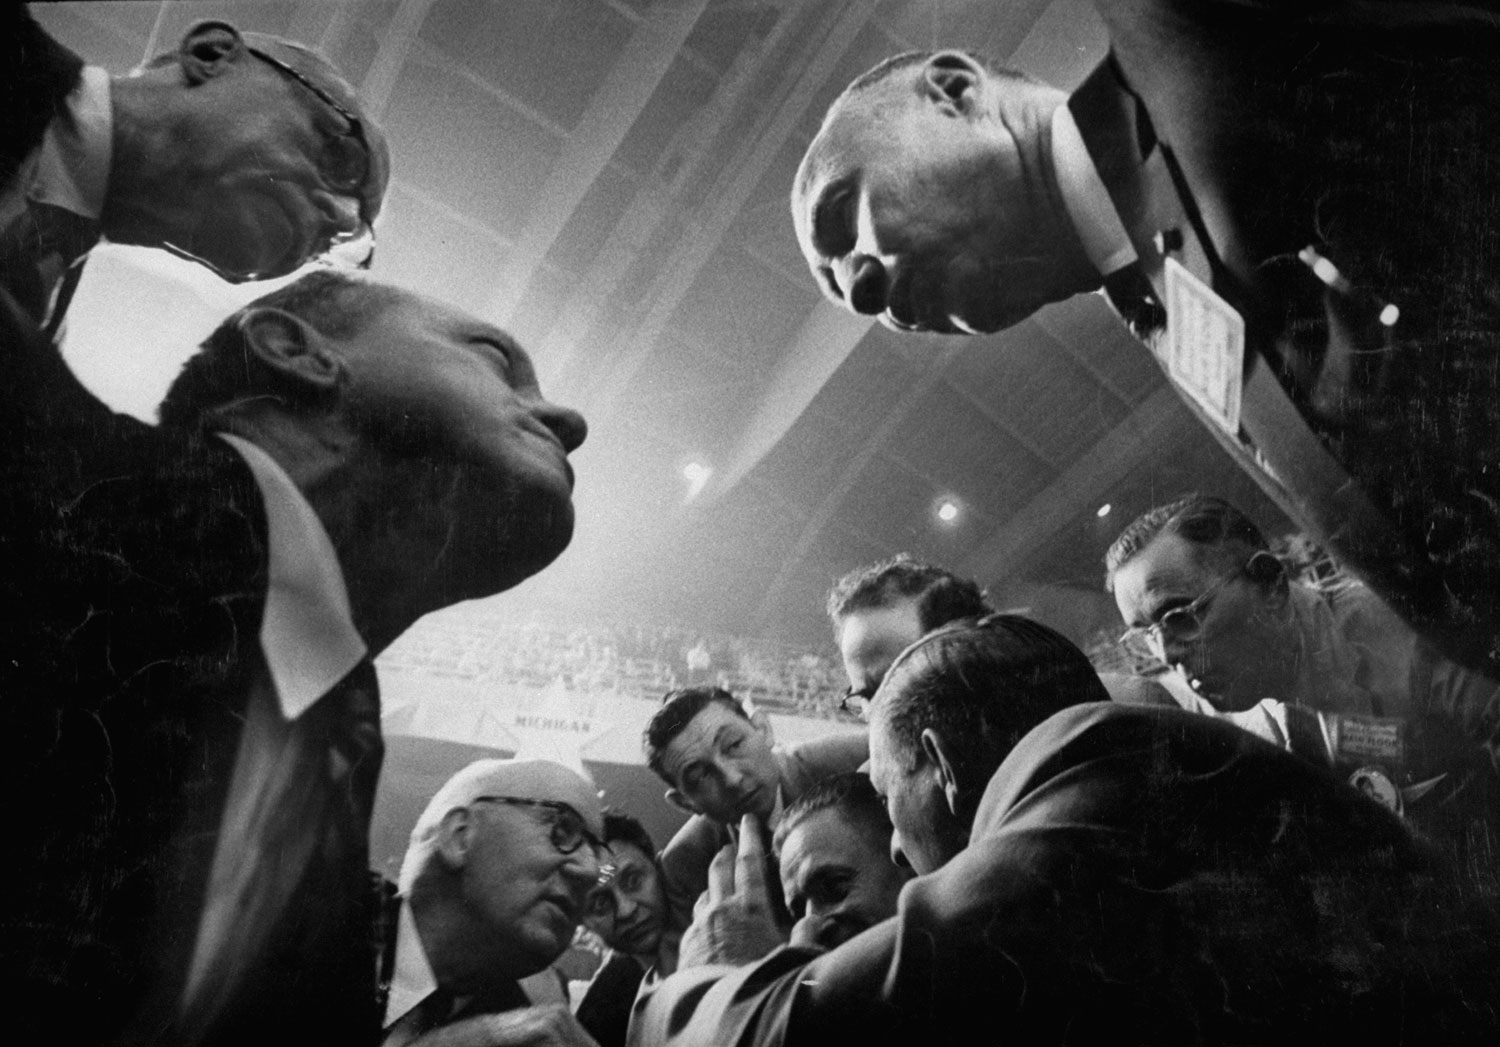 Delegates strategize on the floor during the 1956 Democratic National Convention in Chicago.